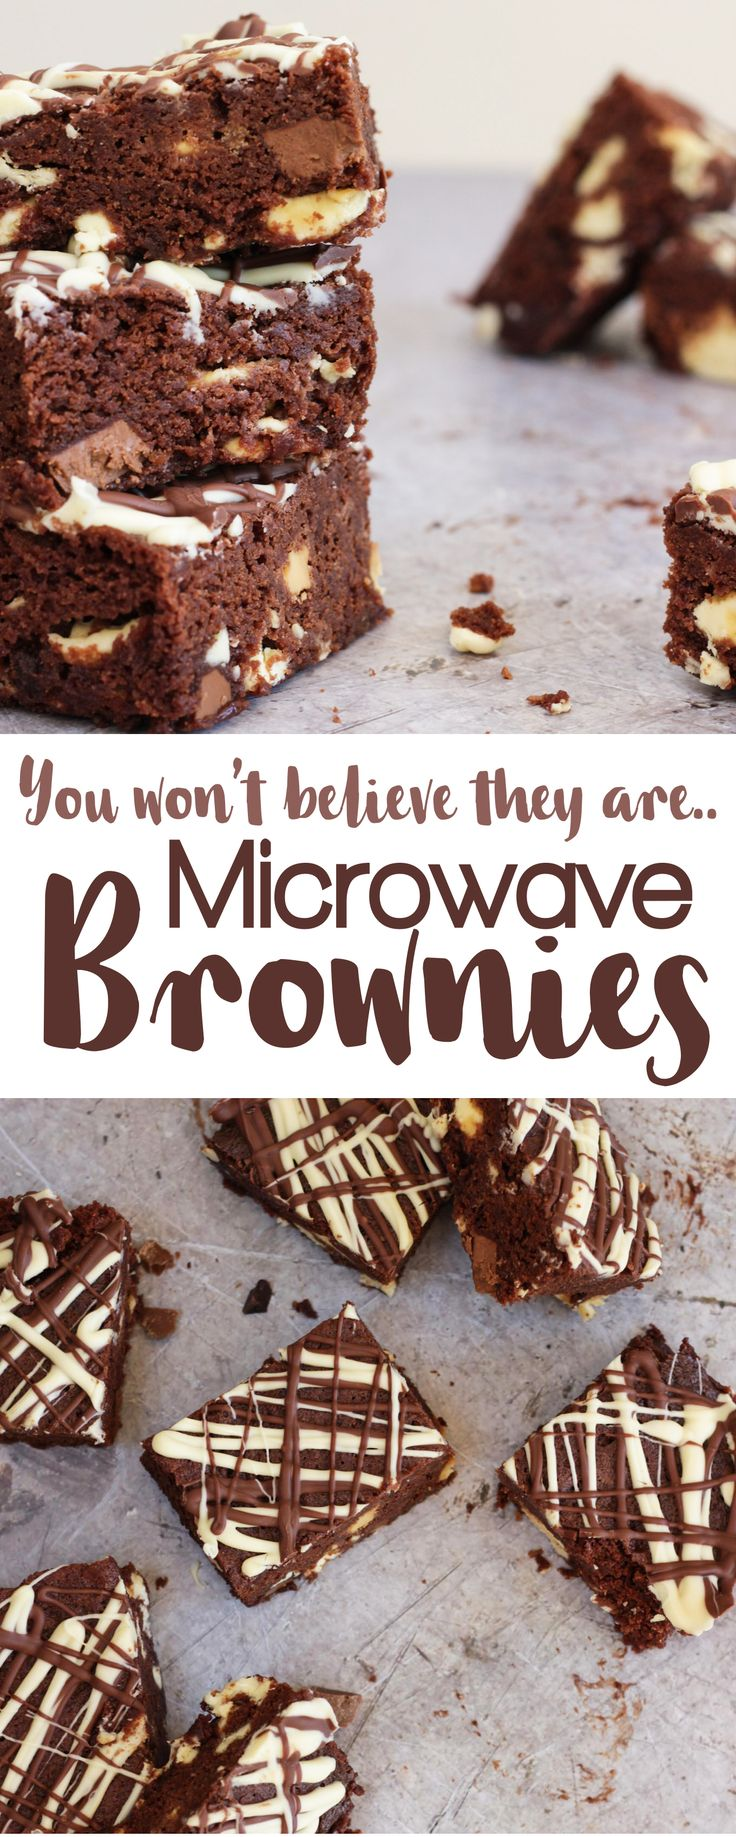 Double Chocolate Microwave Brownies - Stop what you're doing, microwave brownies are a thing and they ARE SO GOOD! They can be yours in under 30 minutes... Fudgy, chocolatey deliciousness microwaved in a flash. The perfect cake, pudding, dessert, gift or